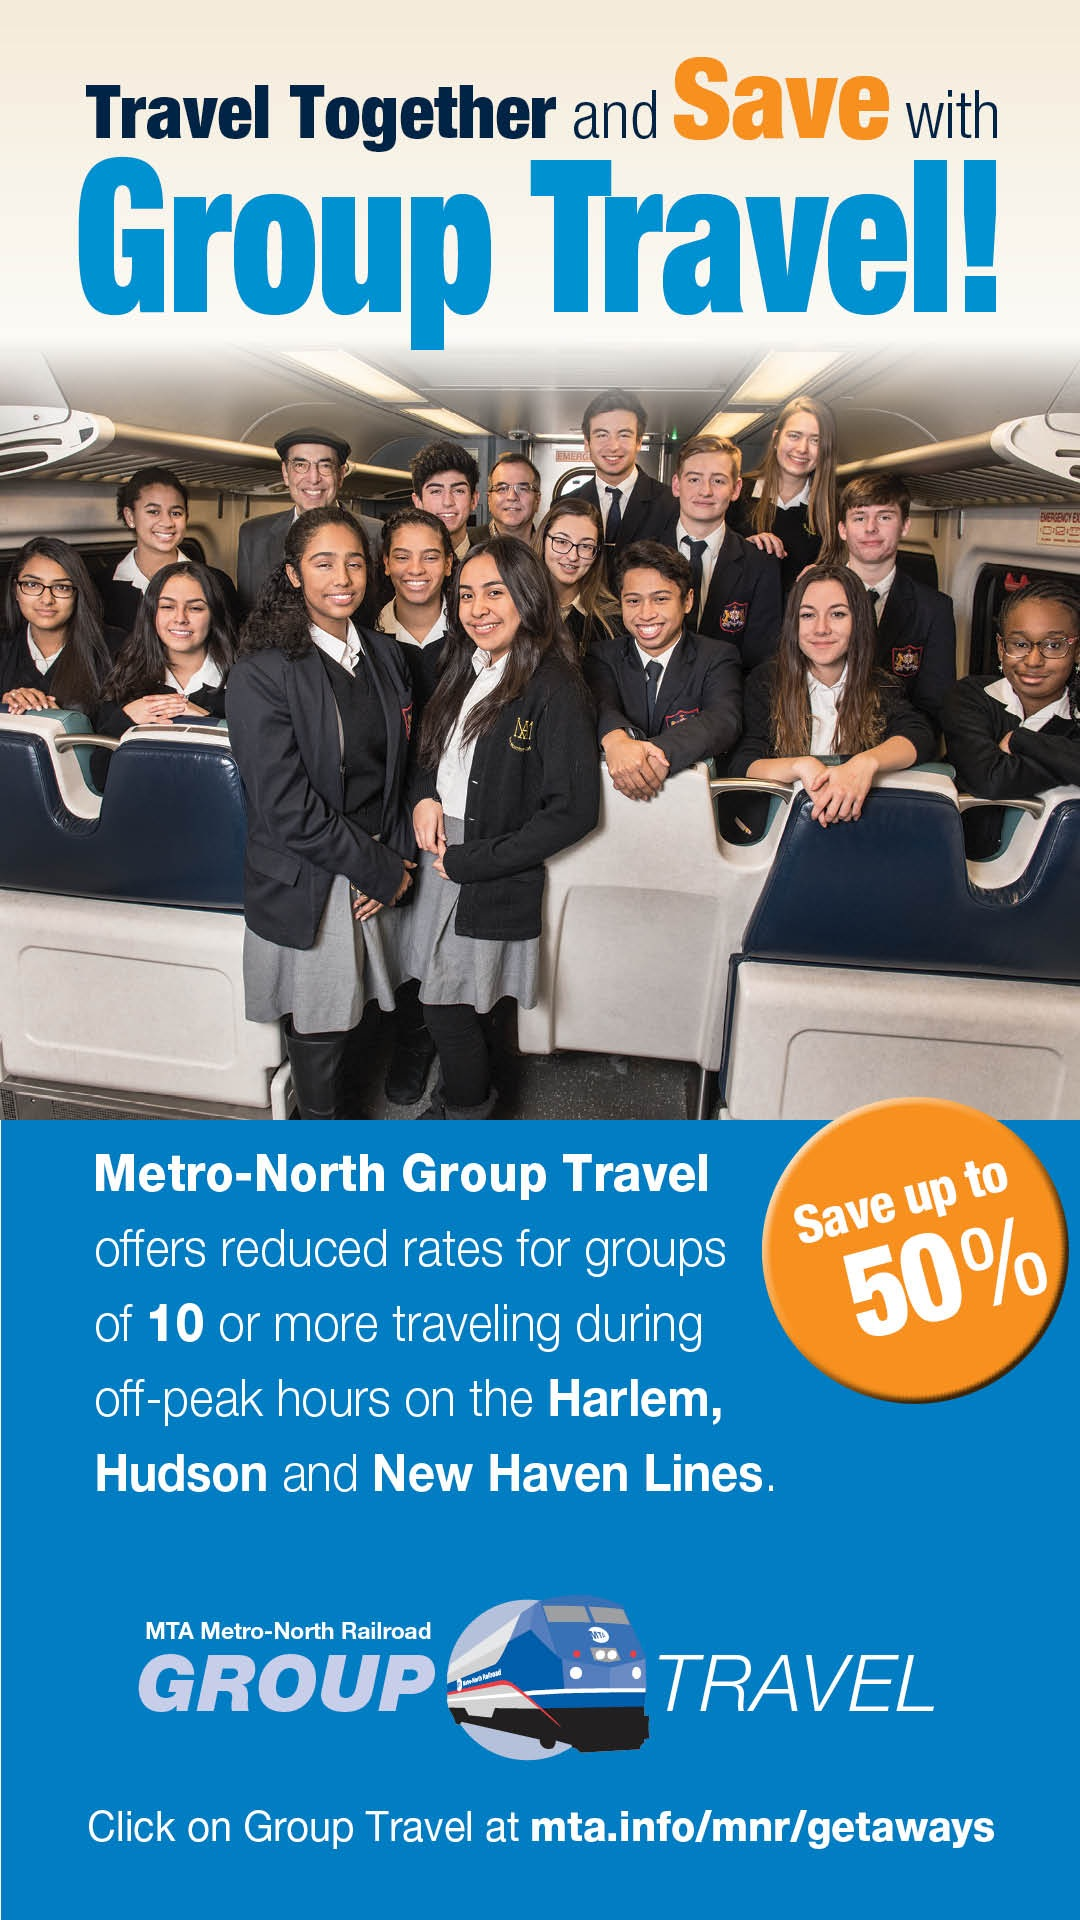 There is a reason Metro North chose Montfort Knights for their group travel advertisement. Our students are respectful, kind, confident, and joyful. Read below what parents, students, and others like Cardinal Dolan observe and say. -